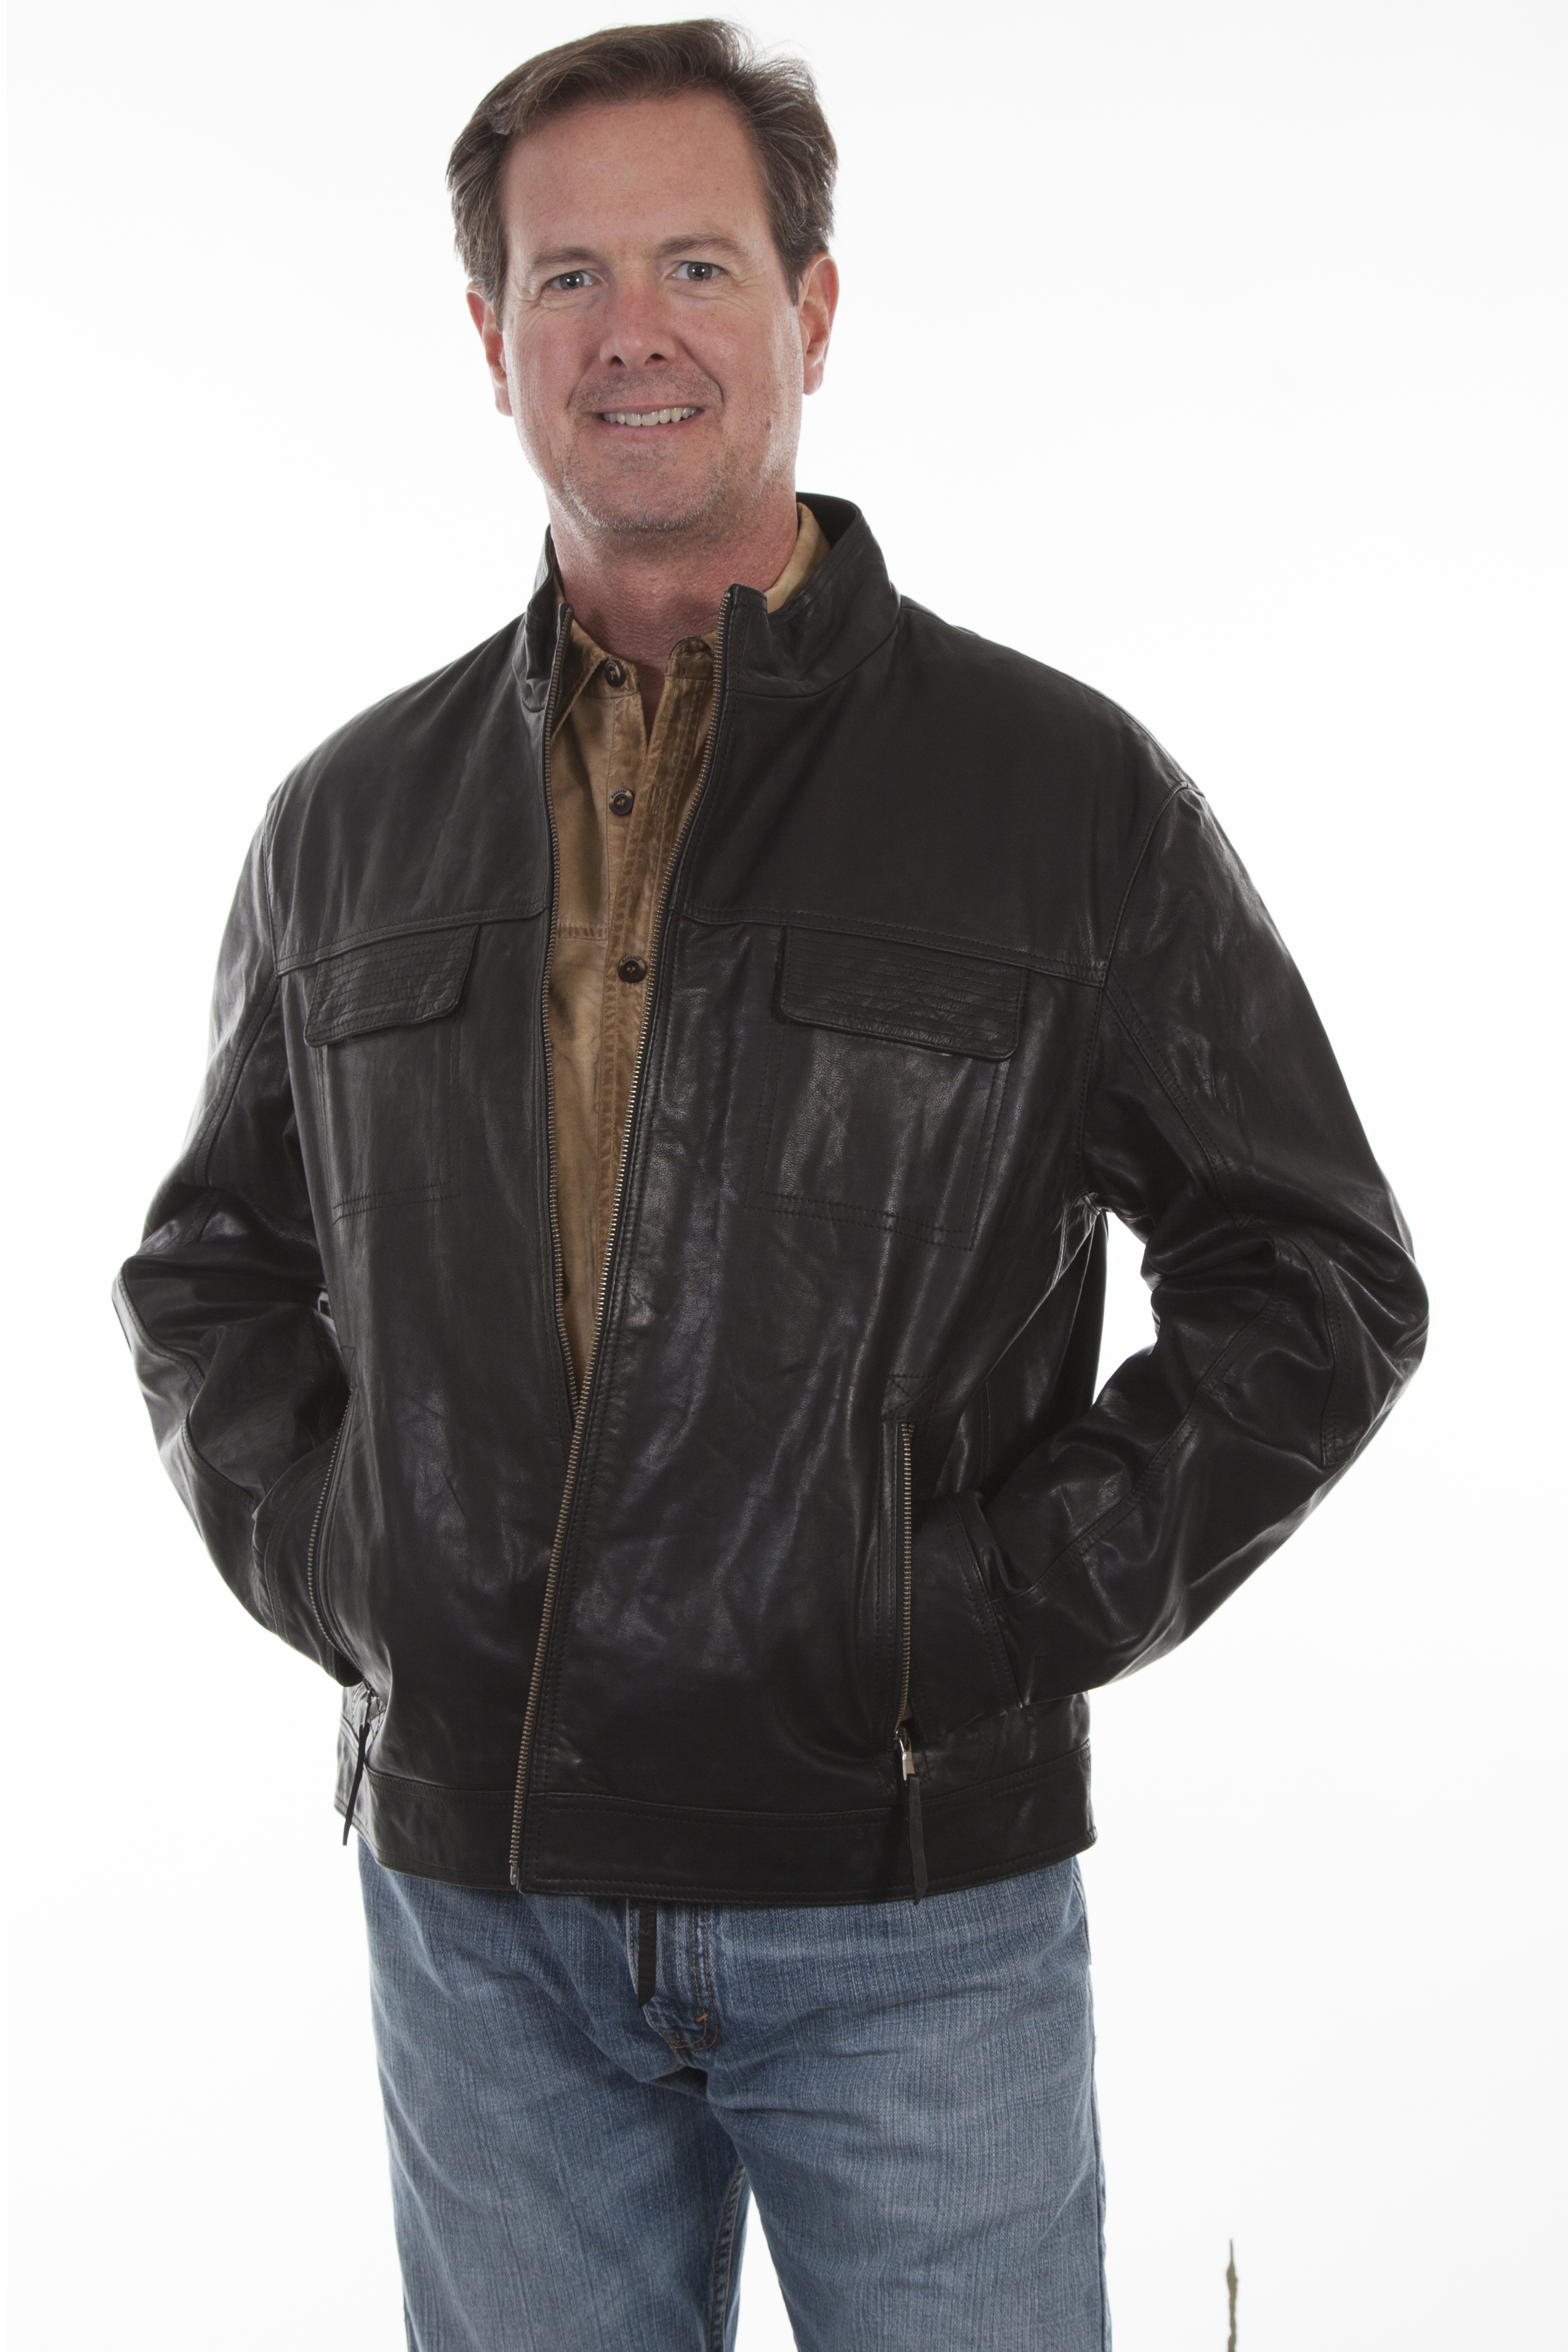 Lambskin jacket with zip front and stand-up collar